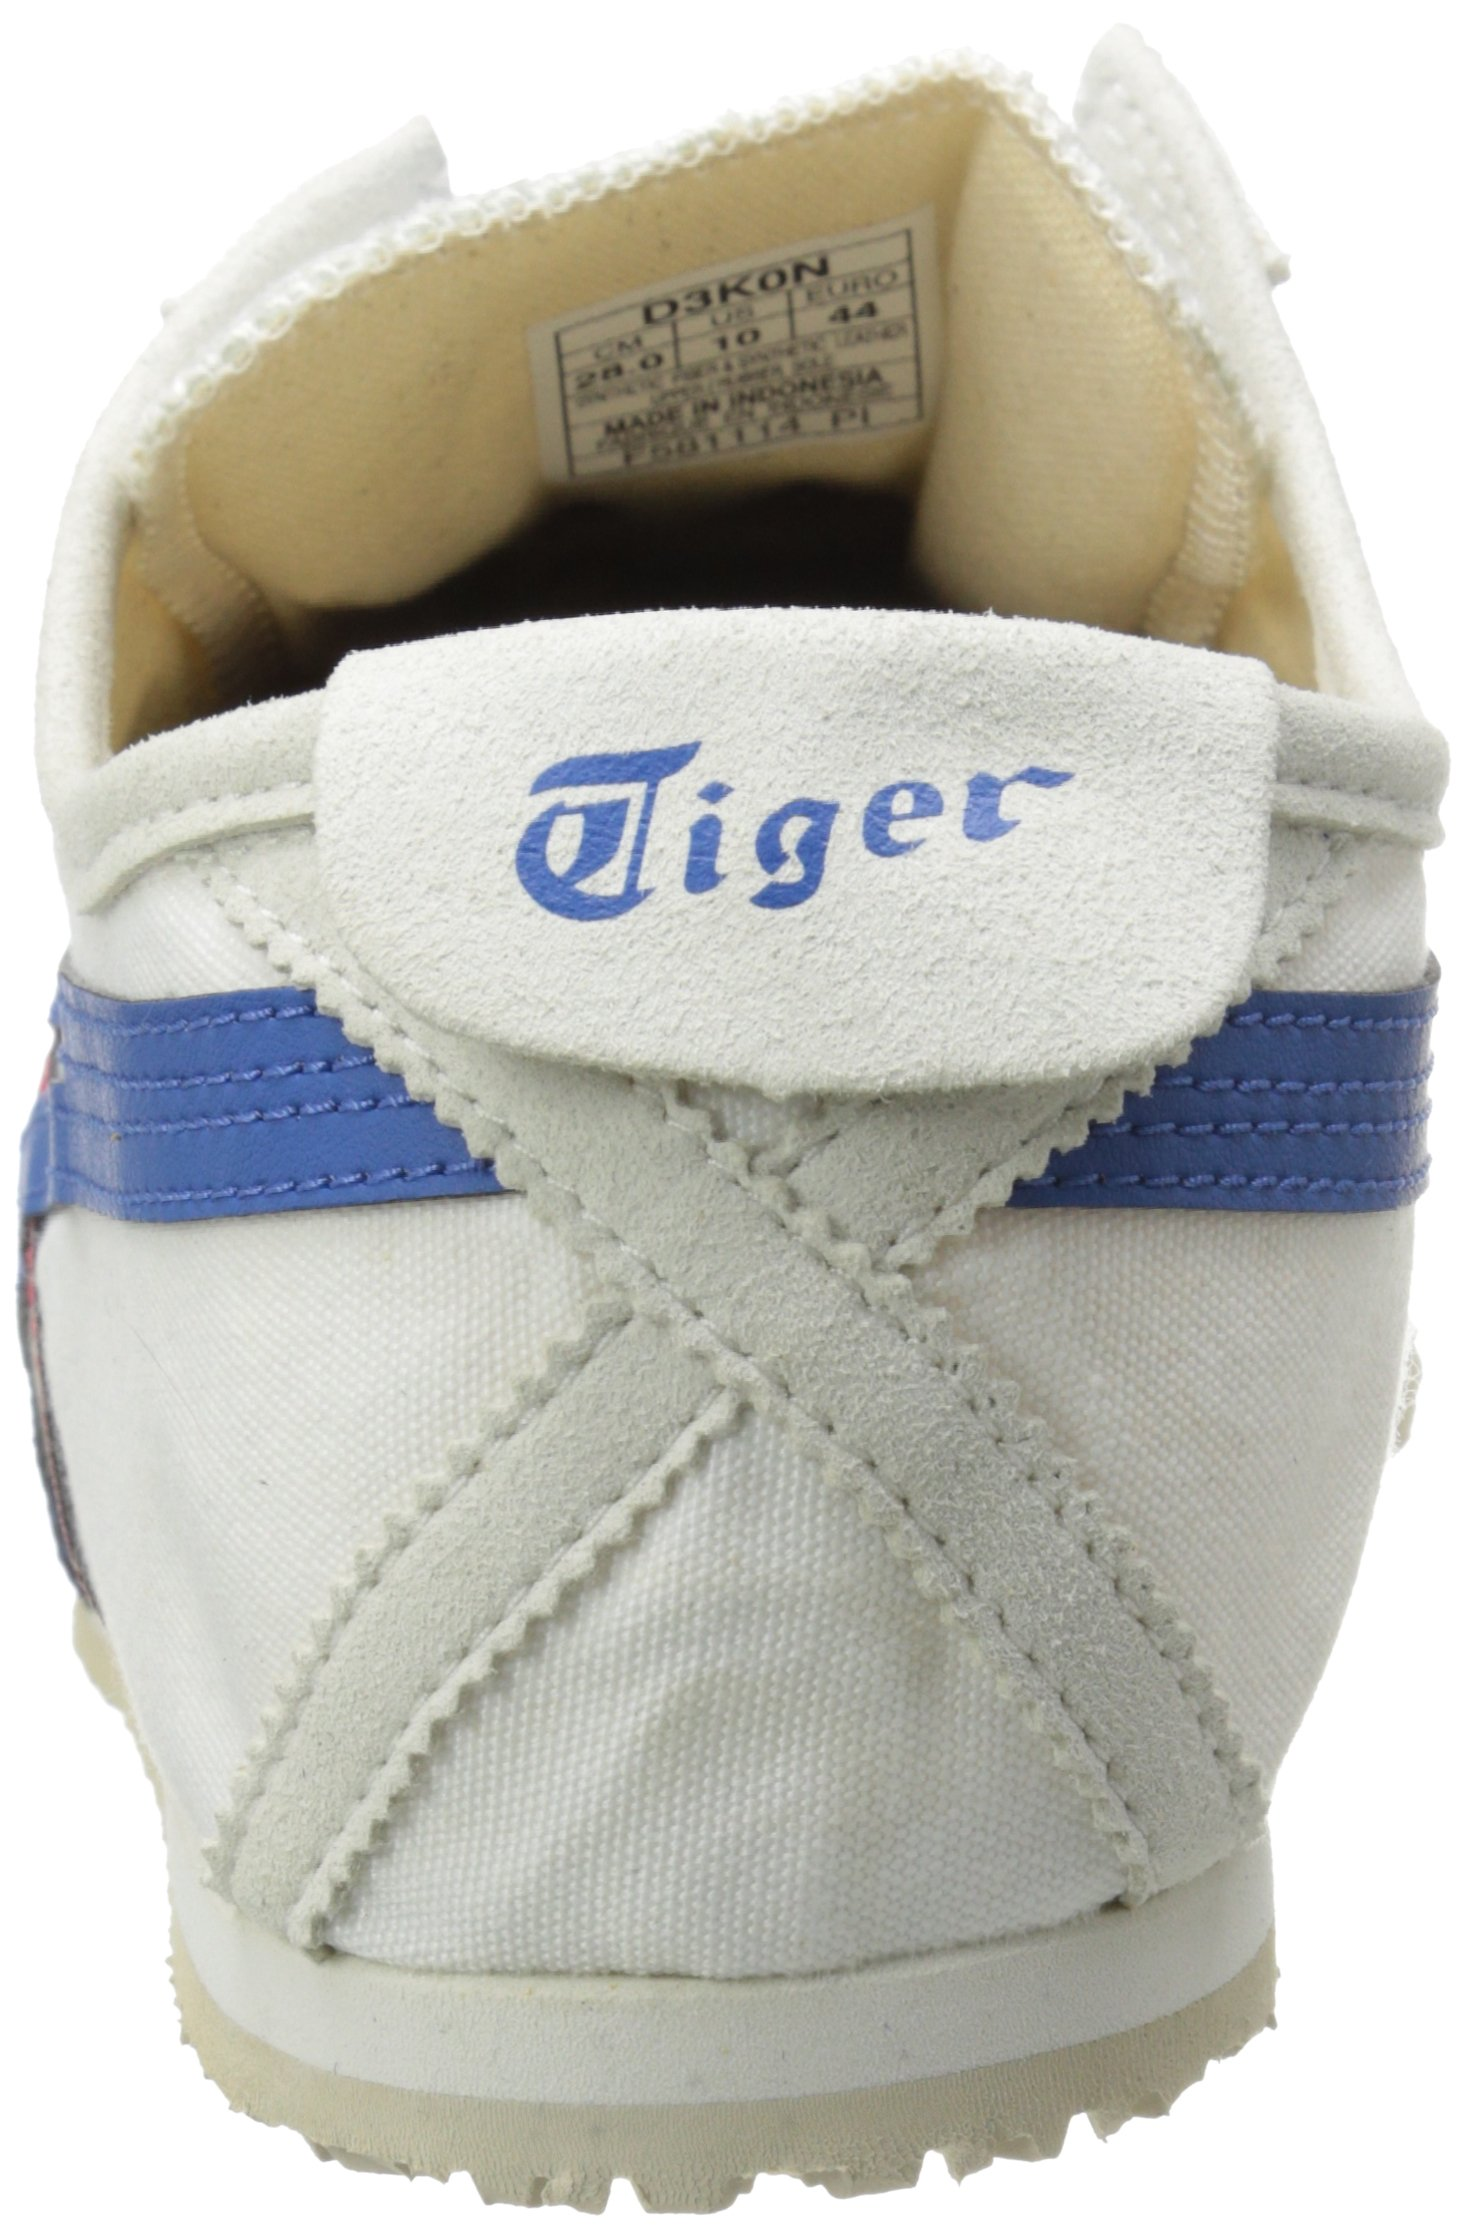 Onitsuka Tiger Unisex Mexico 66 Slip-on Shoes D3K0N, White/Tricolor, 9.5 M US by Onitsuka Tiger (Image #2)